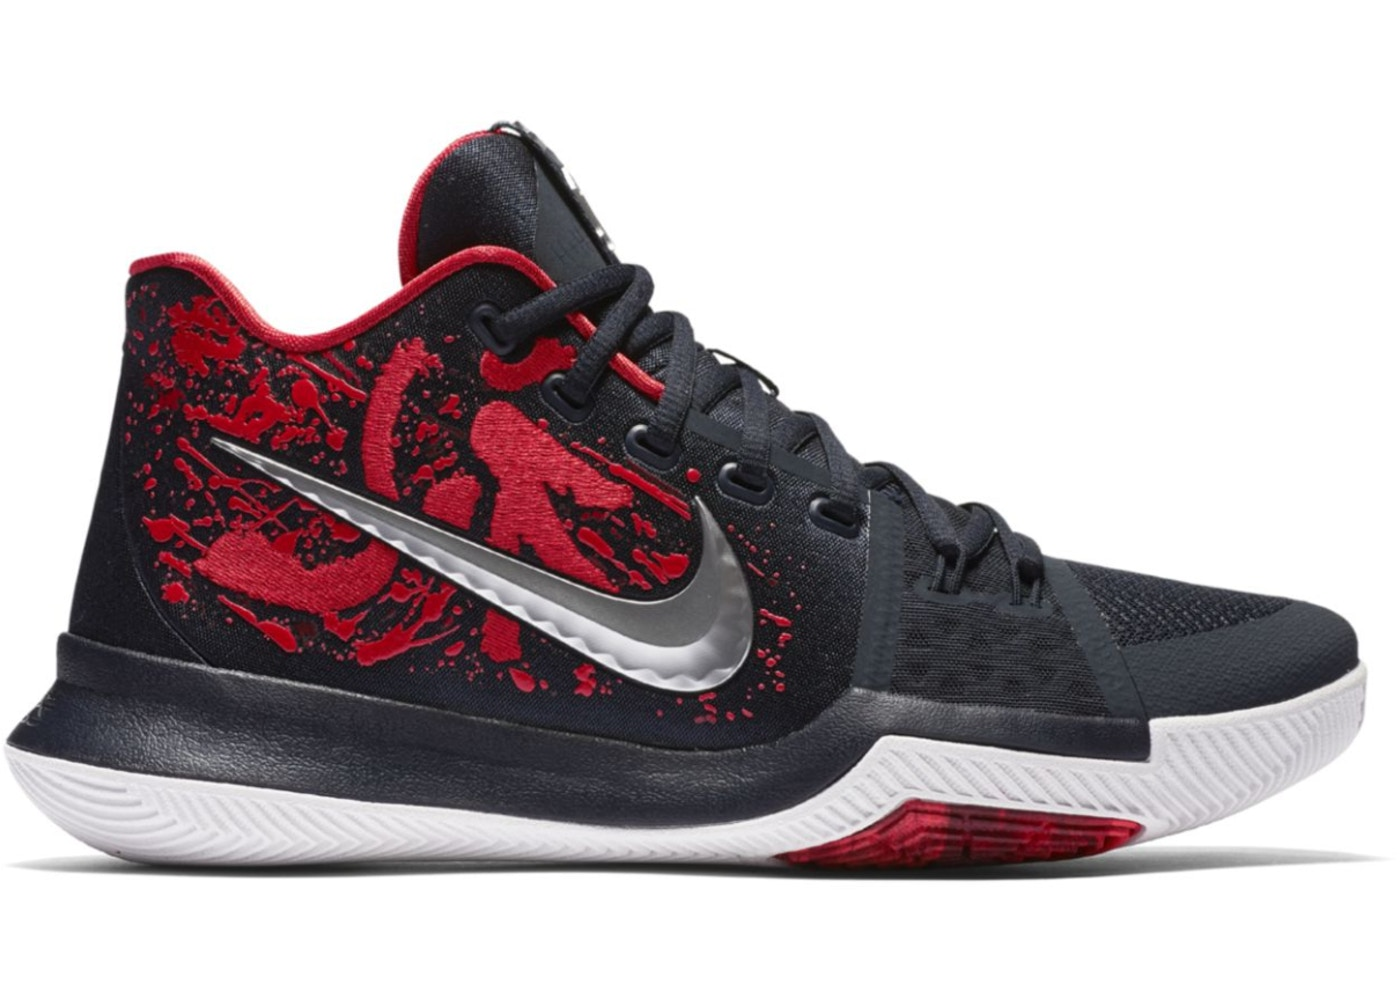 check out de73c 10ae9 Kyrie 3 Samurai - 852395-900